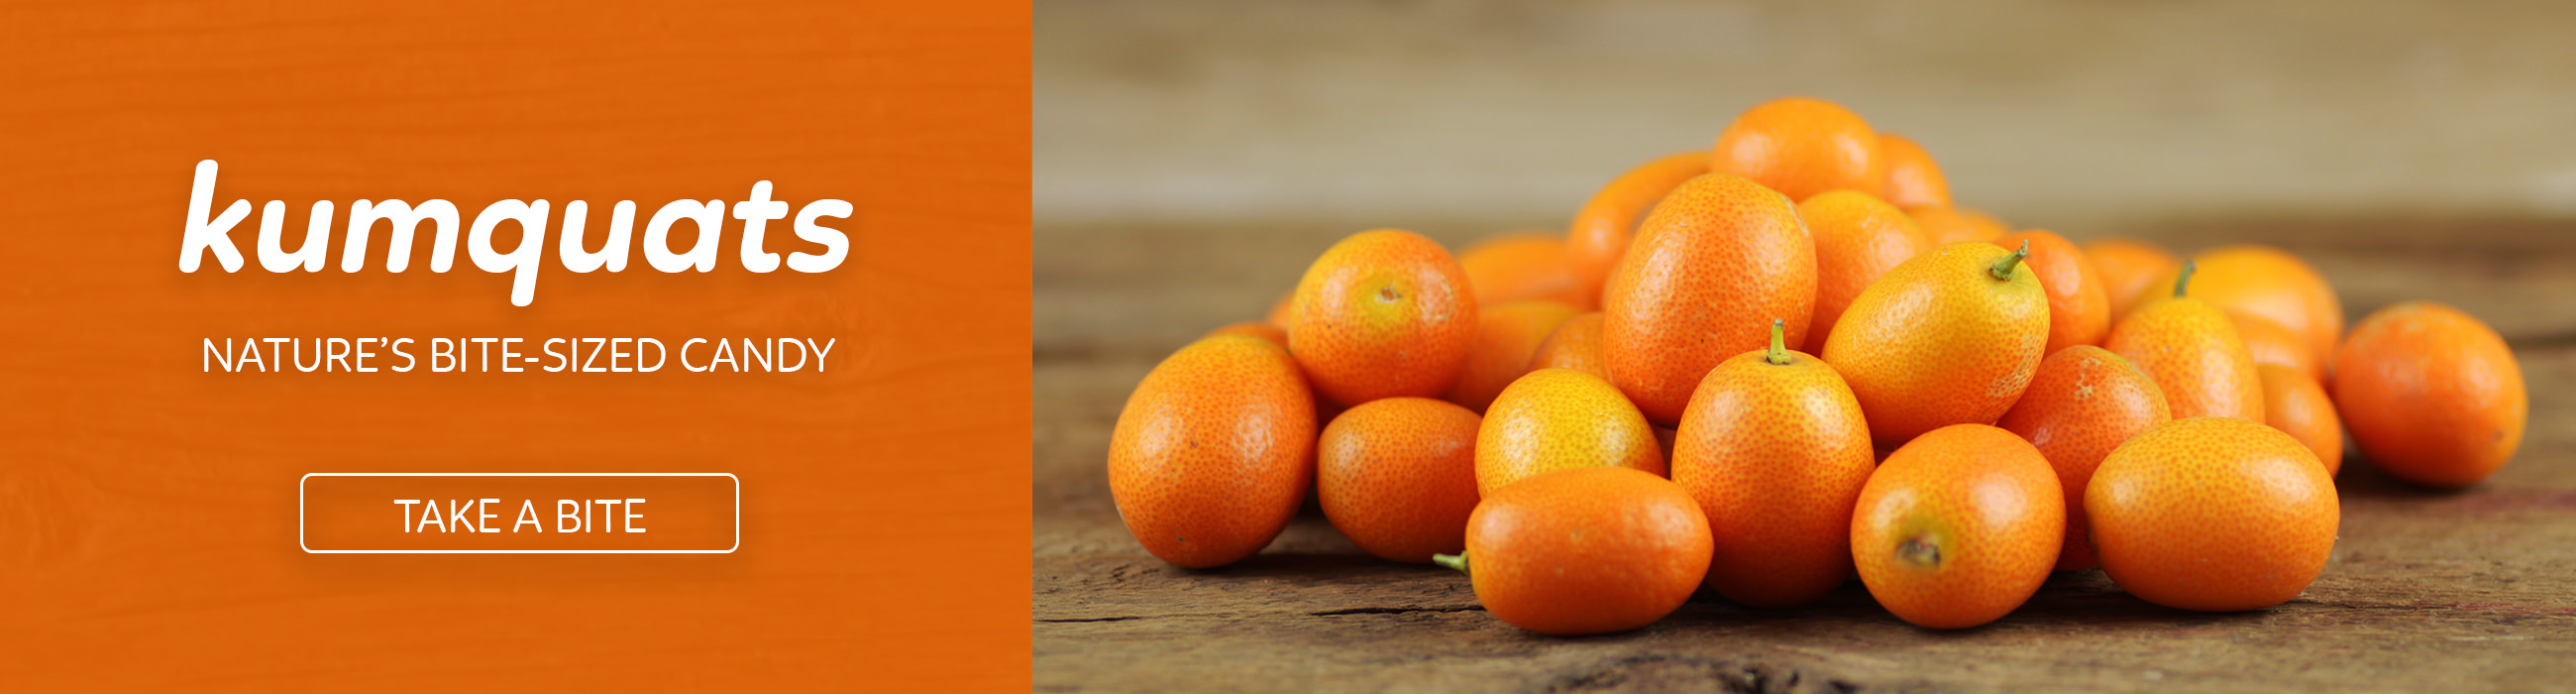 Kumquats - Now Avaliable